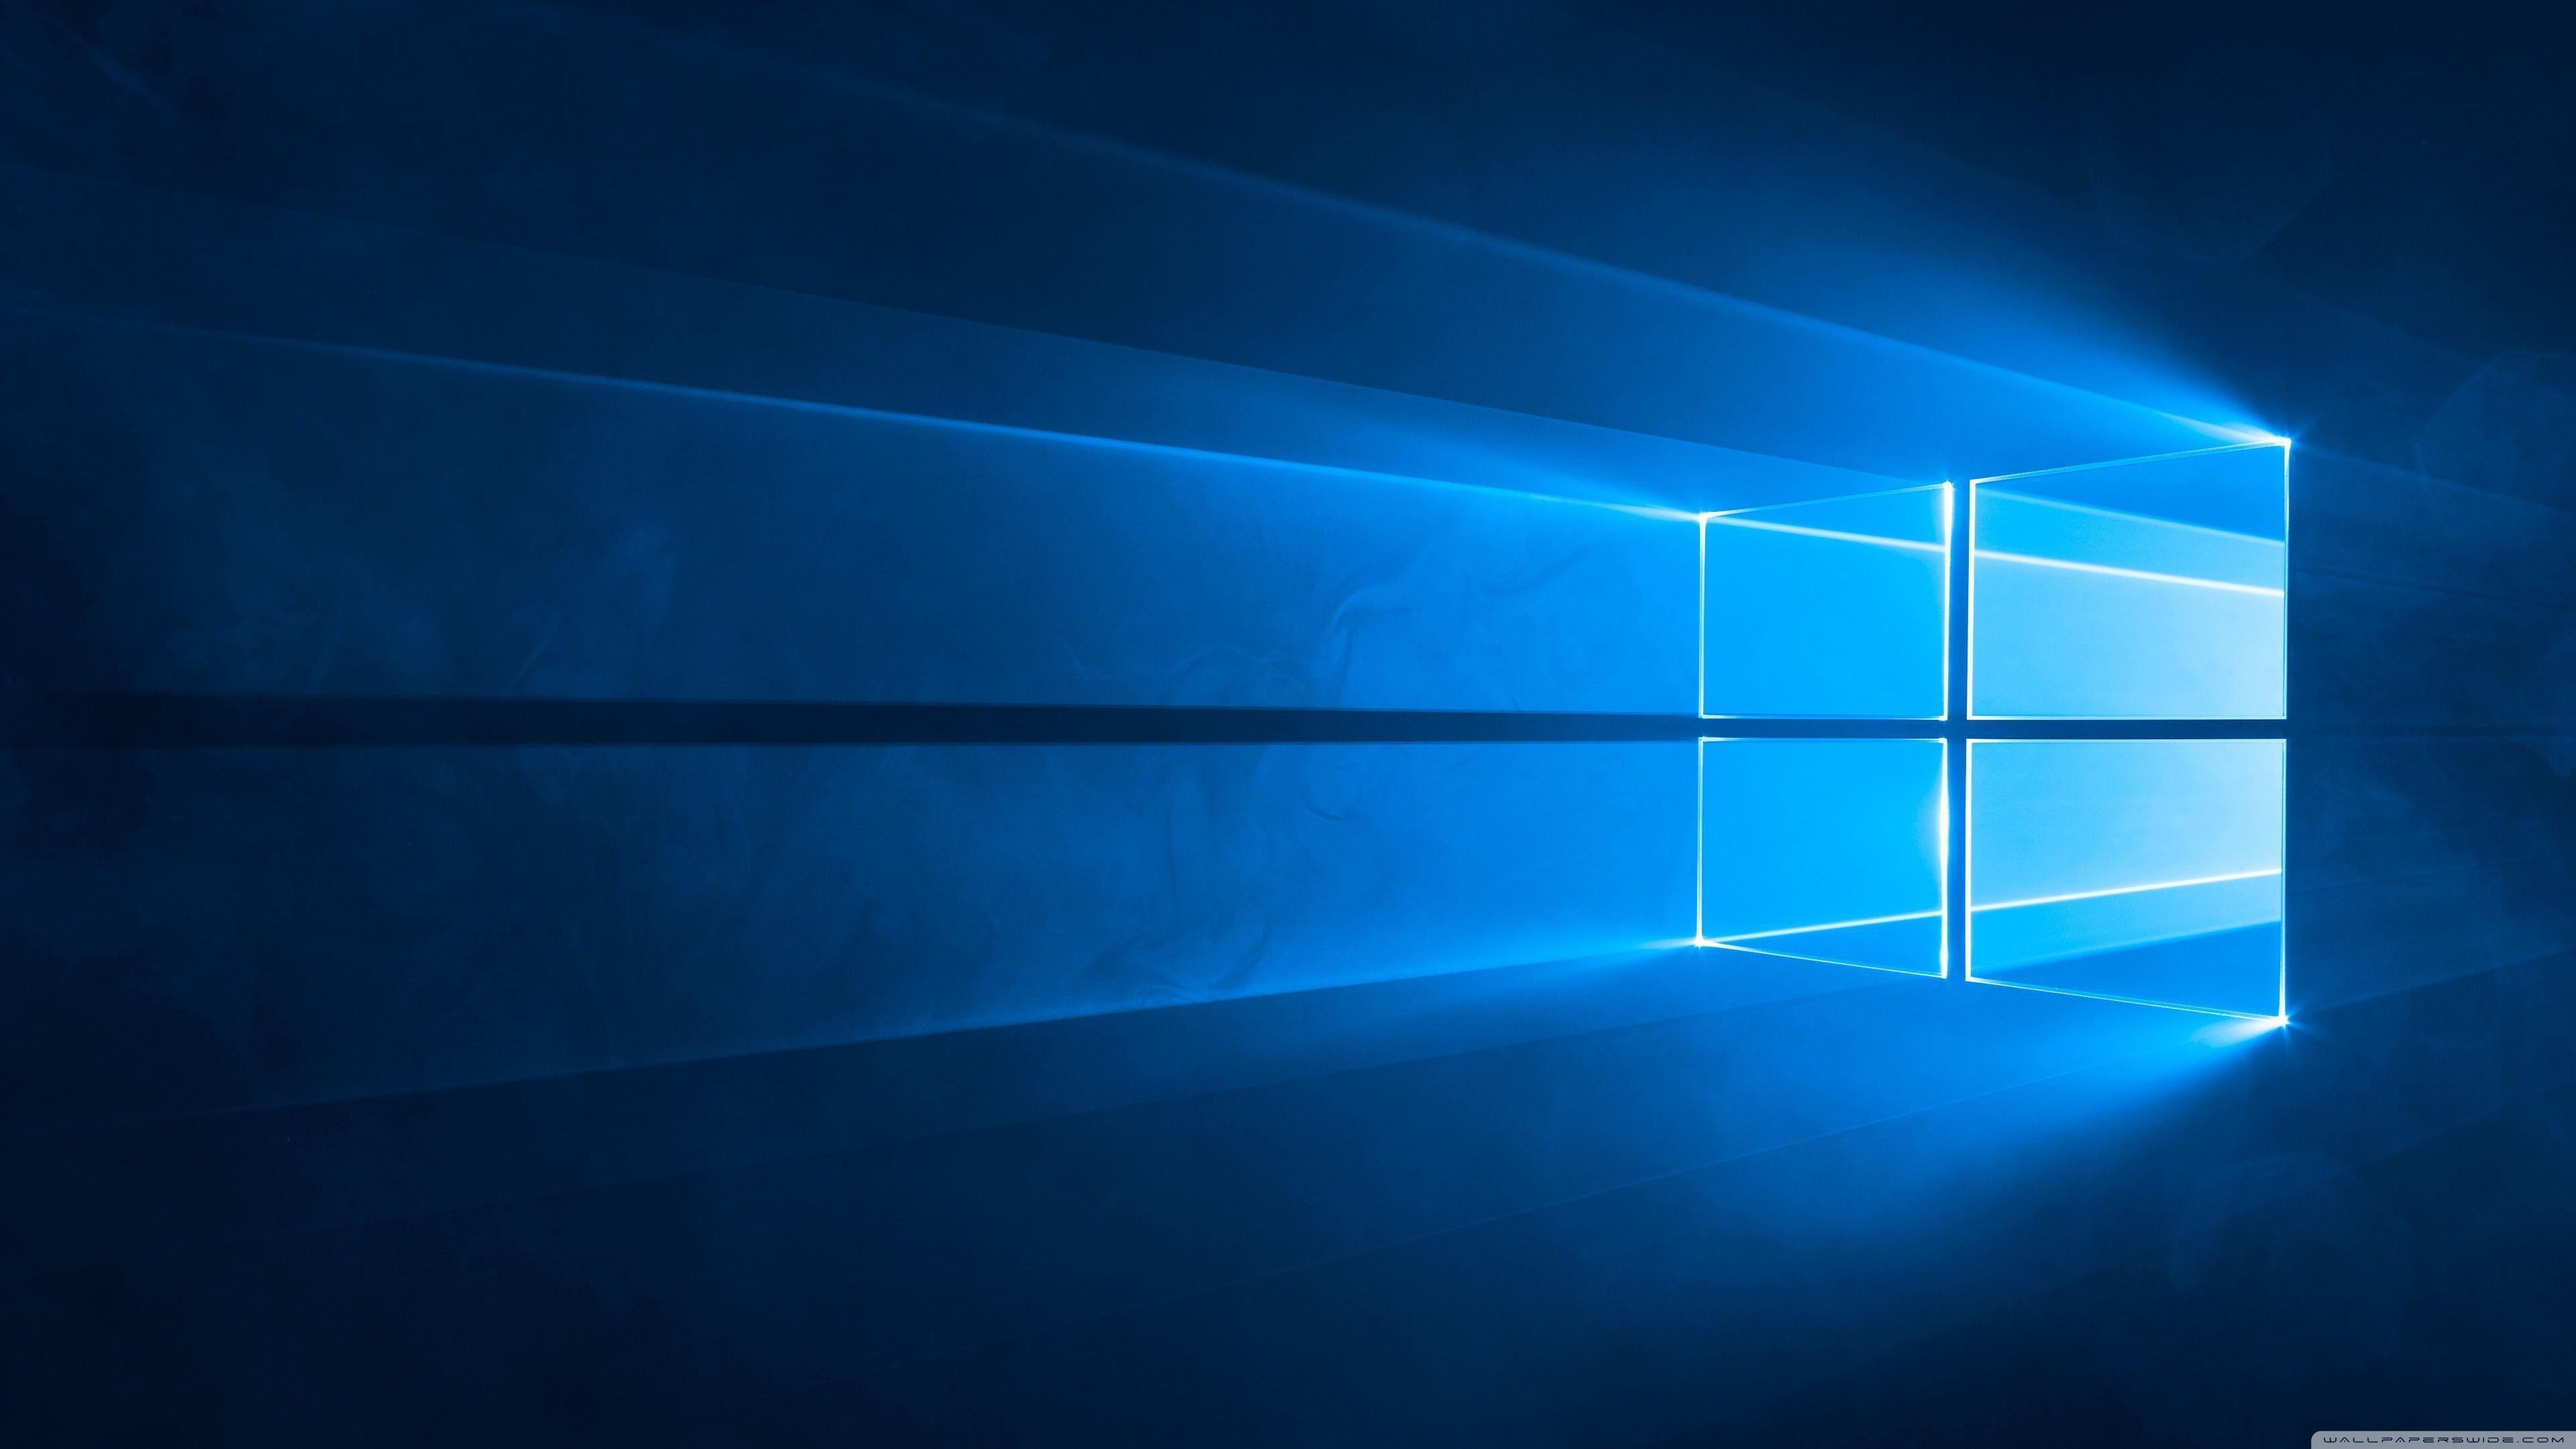 Microsoft Windows 10 Wallpapers Wallpaper Cave